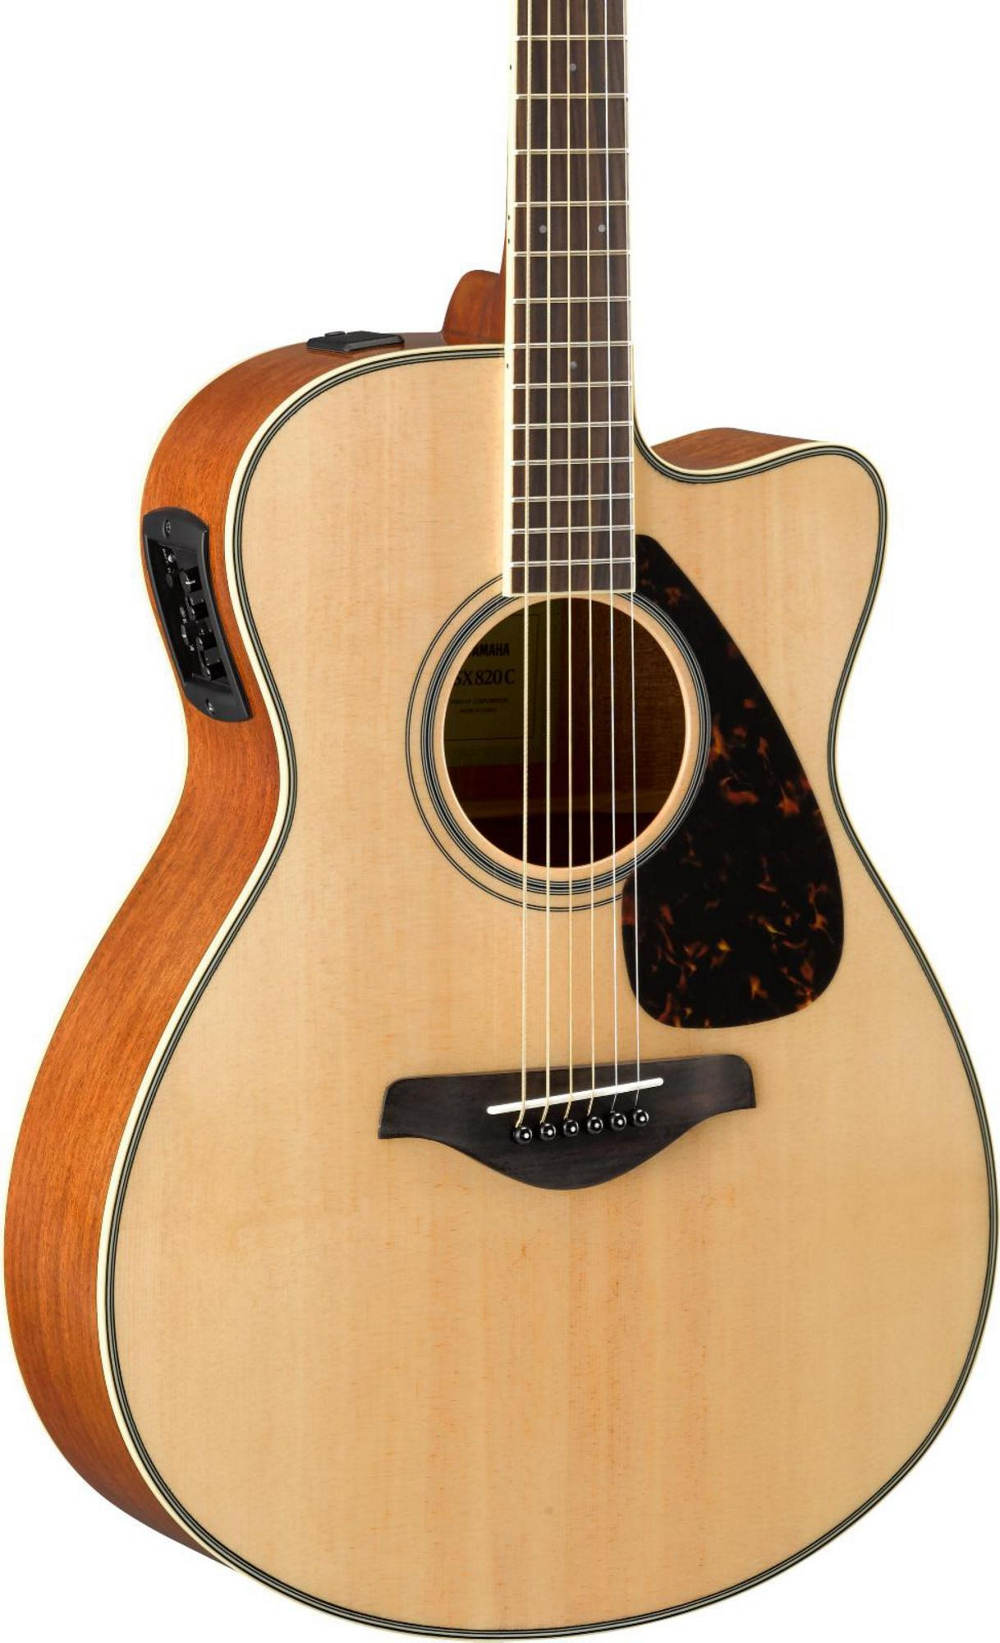 yamaha fsx820c small body acoustic electric guitar natural ebay. Black Bedroom Furniture Sets. Home Design Ideas